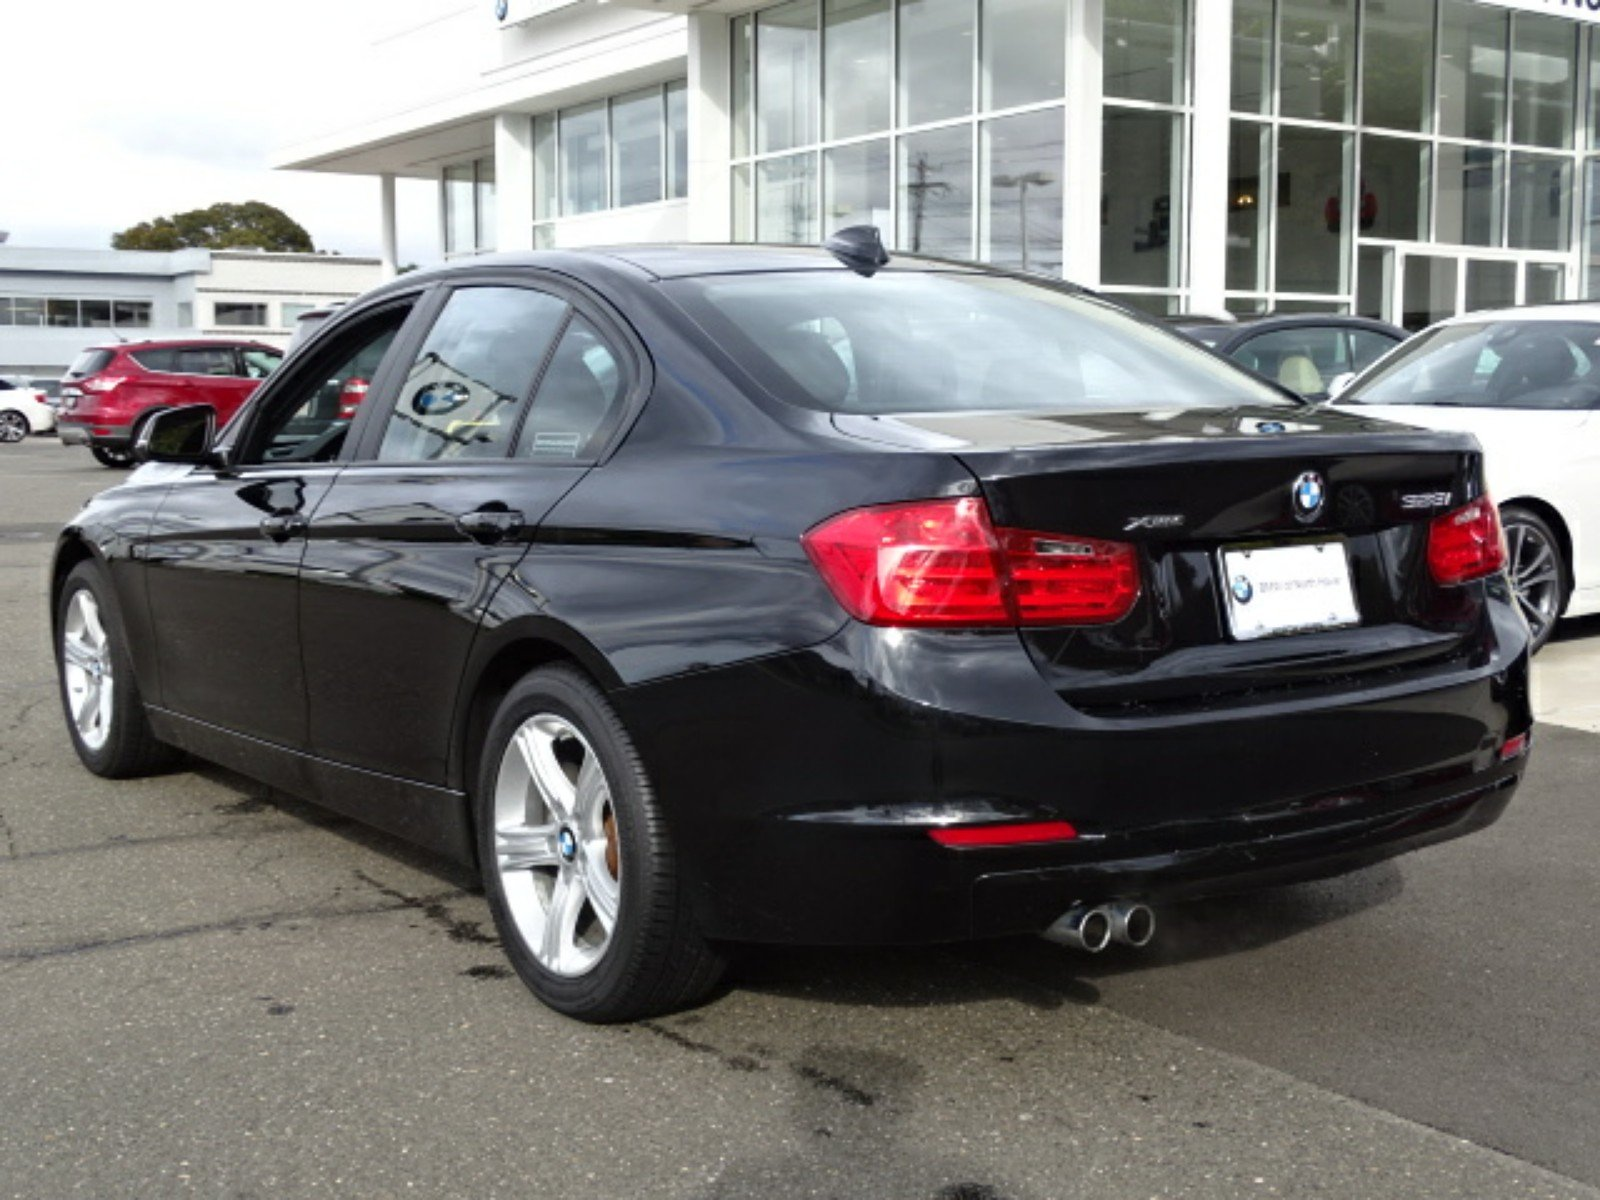 PreOwned BMW Series I XDrive Dr Car In North Haven - 2014 bmw 328i convertible